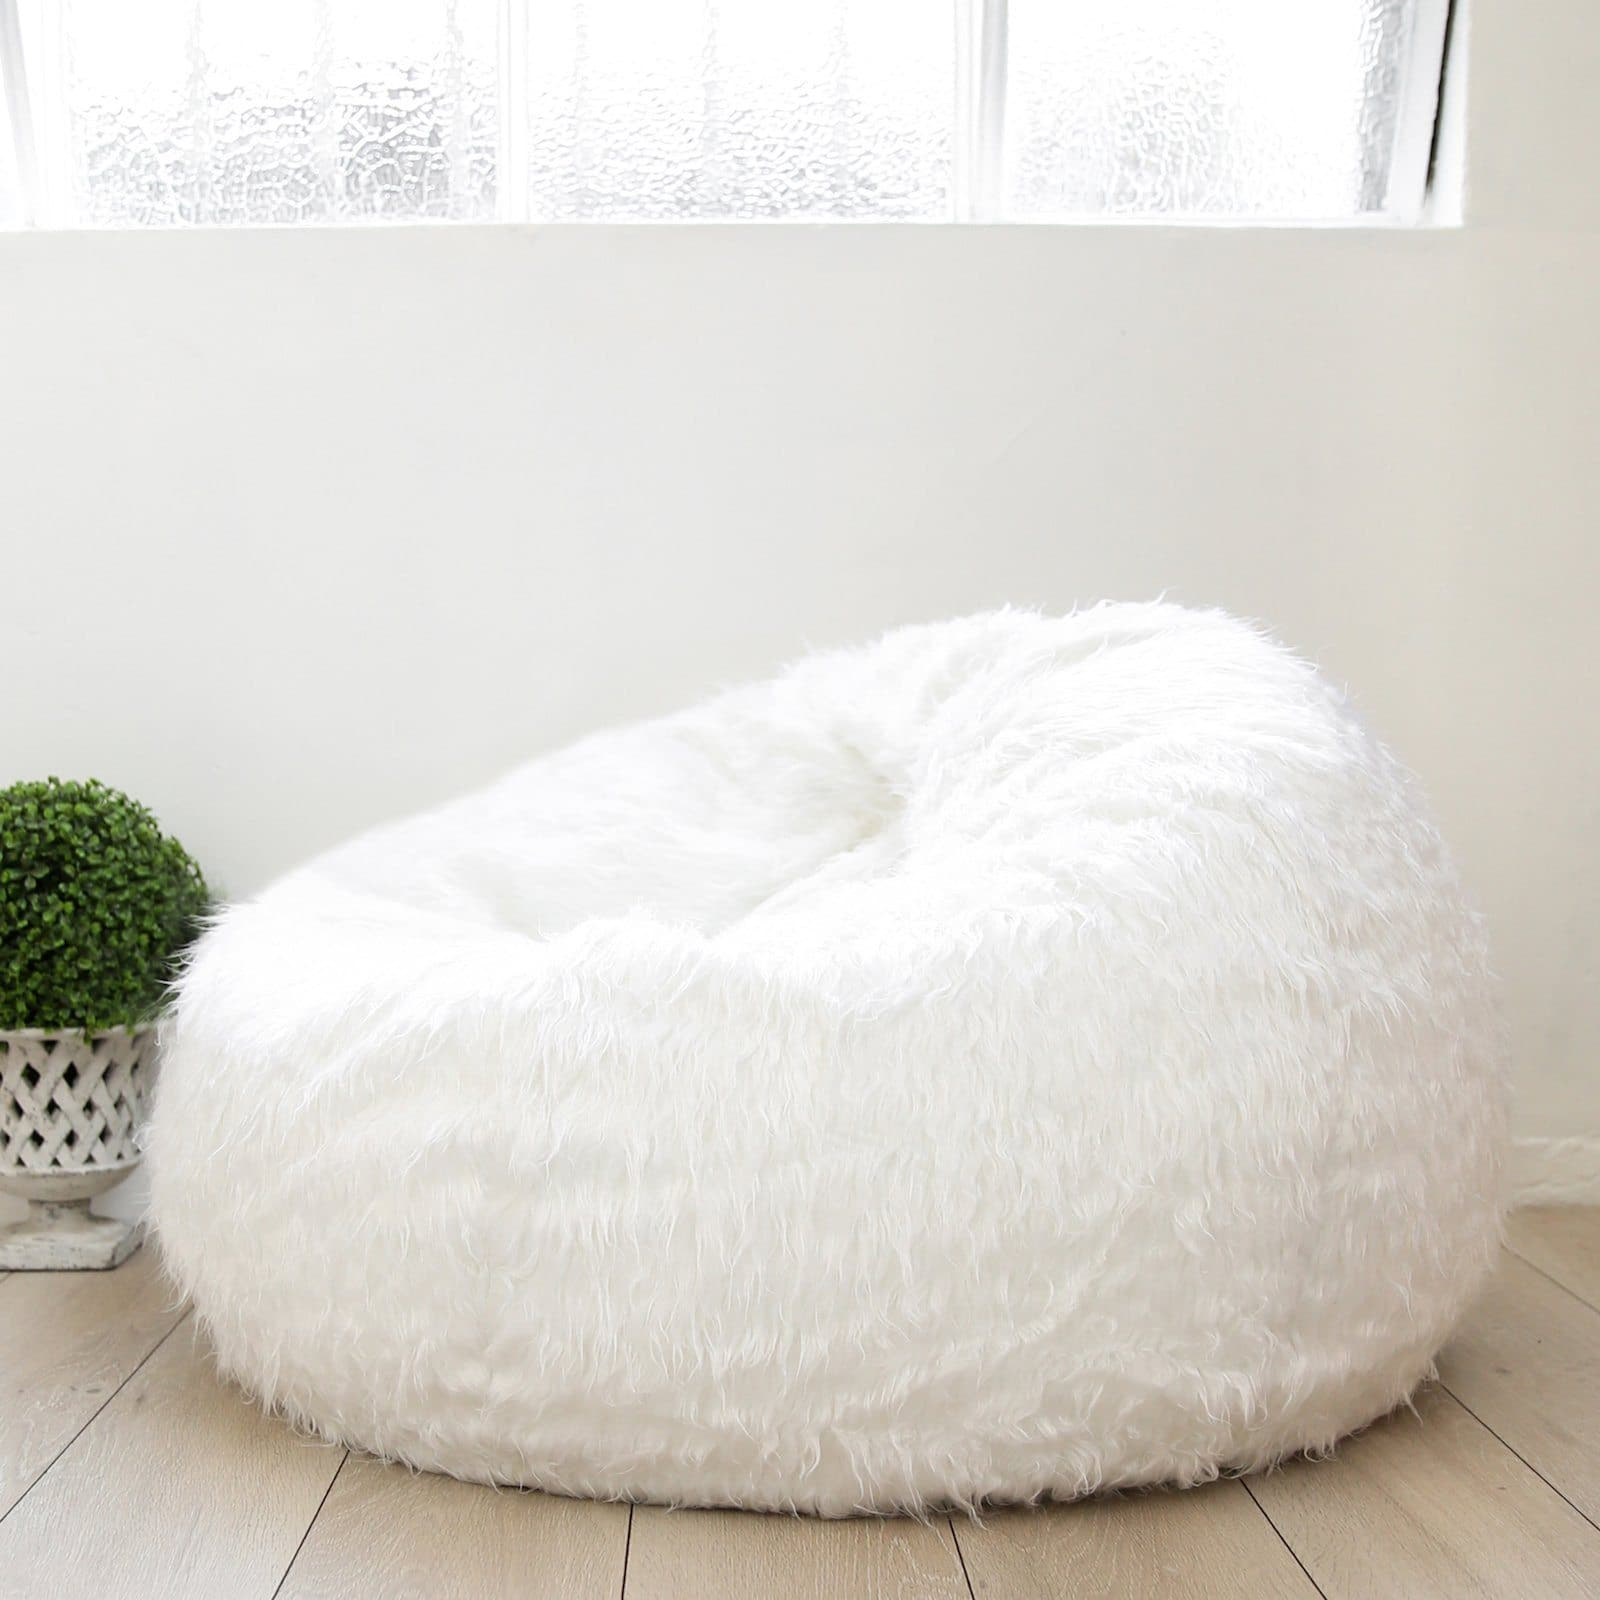 Large Shaggy White Fur Beanbag Under A Warehouse Window With Green Plant Next To It